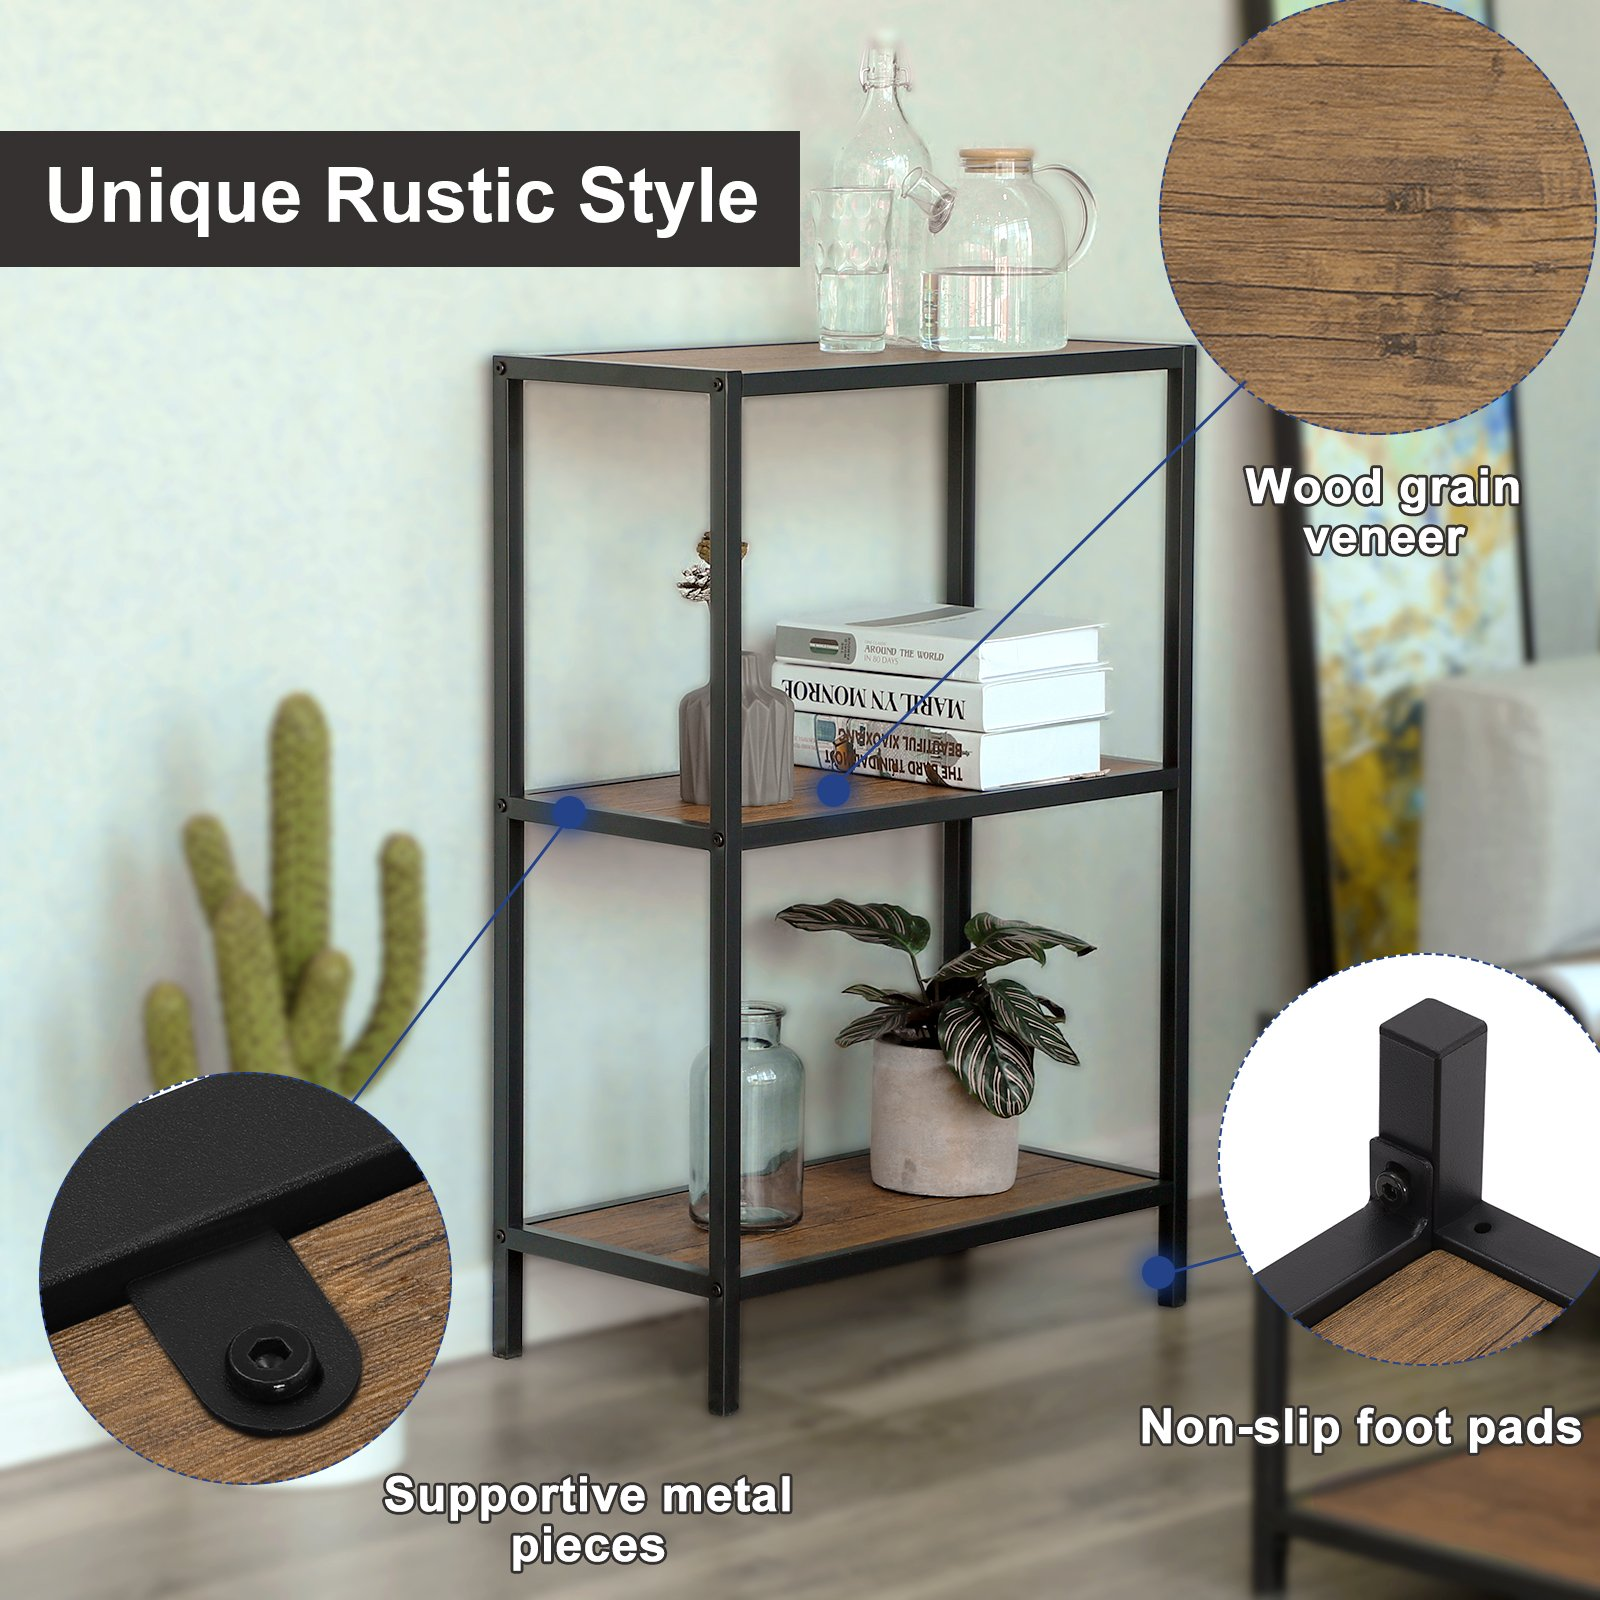 SONGMICS 3-Tier Storage Shelf Rack, Multifunctional Bookcase, Metal Frame Display Rack,Shelving Unit for Kitchen, Living Room,Rustic, ULSS90BX by SONGMICS (Image #5)